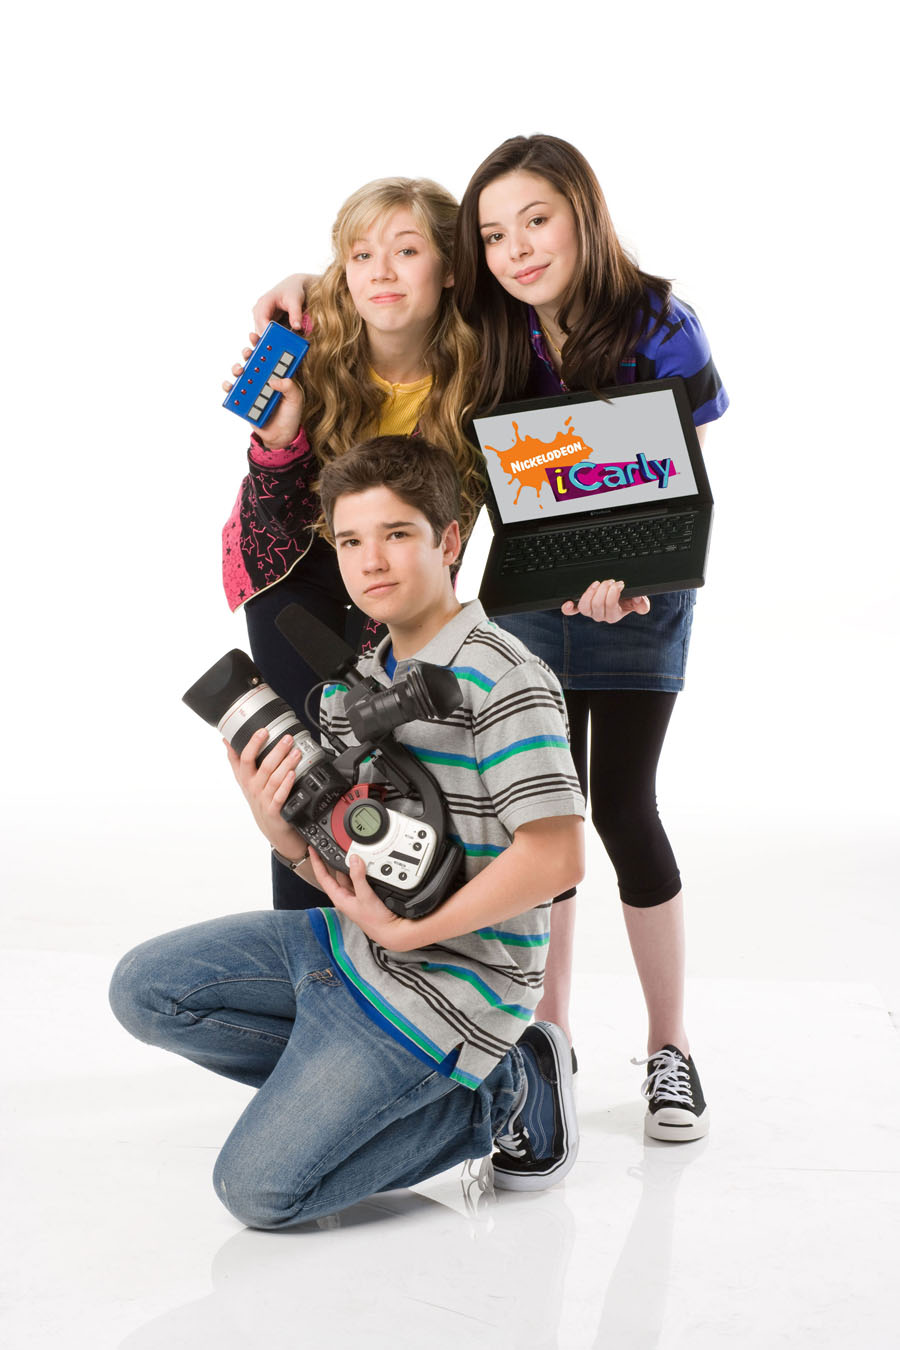 Who is icarly dating in real life